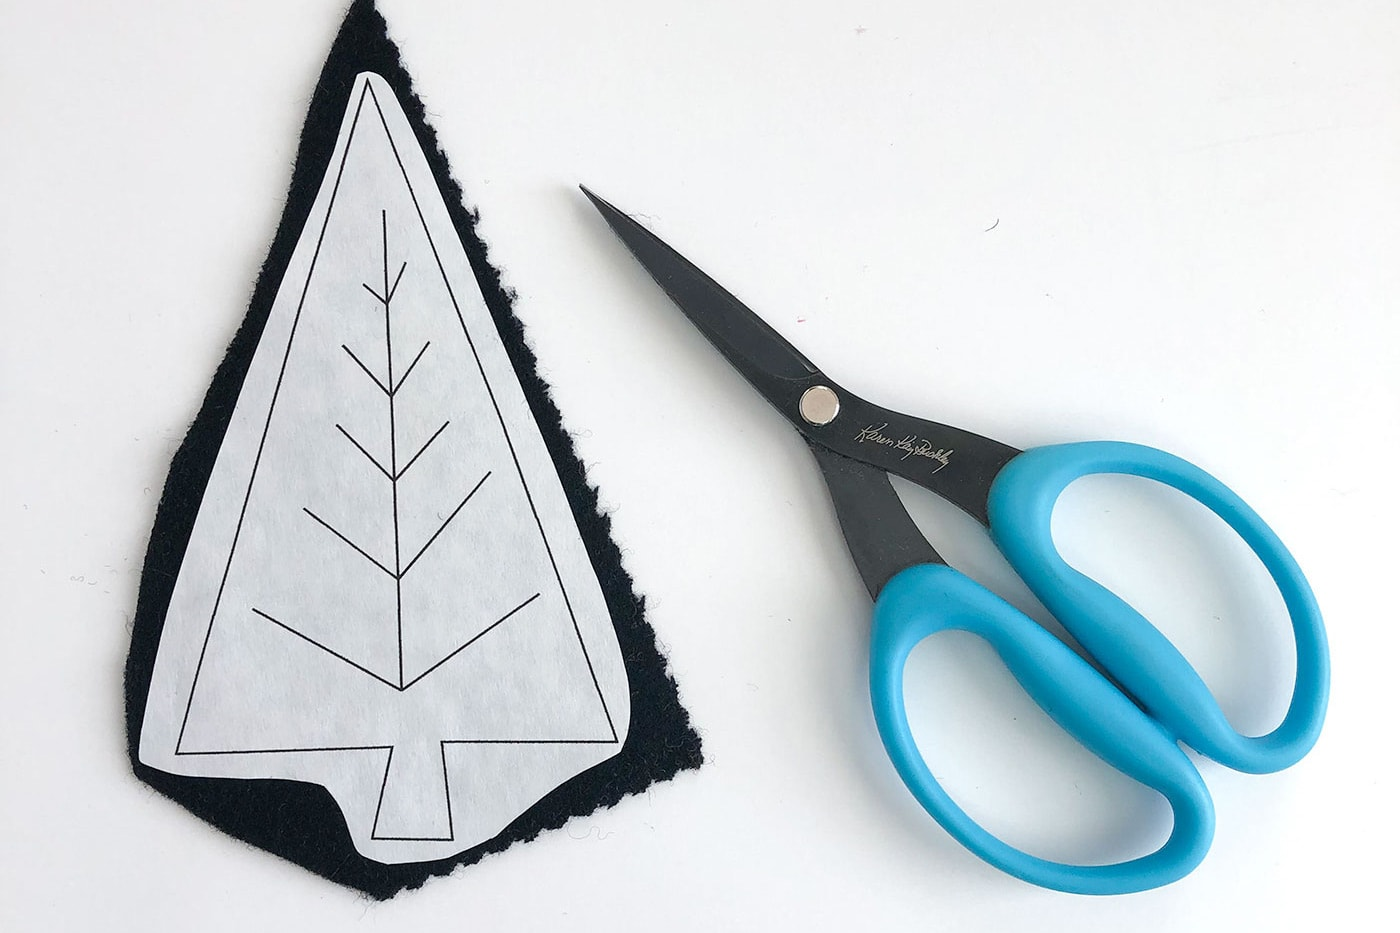 black tree cut from wool with scissors on white table